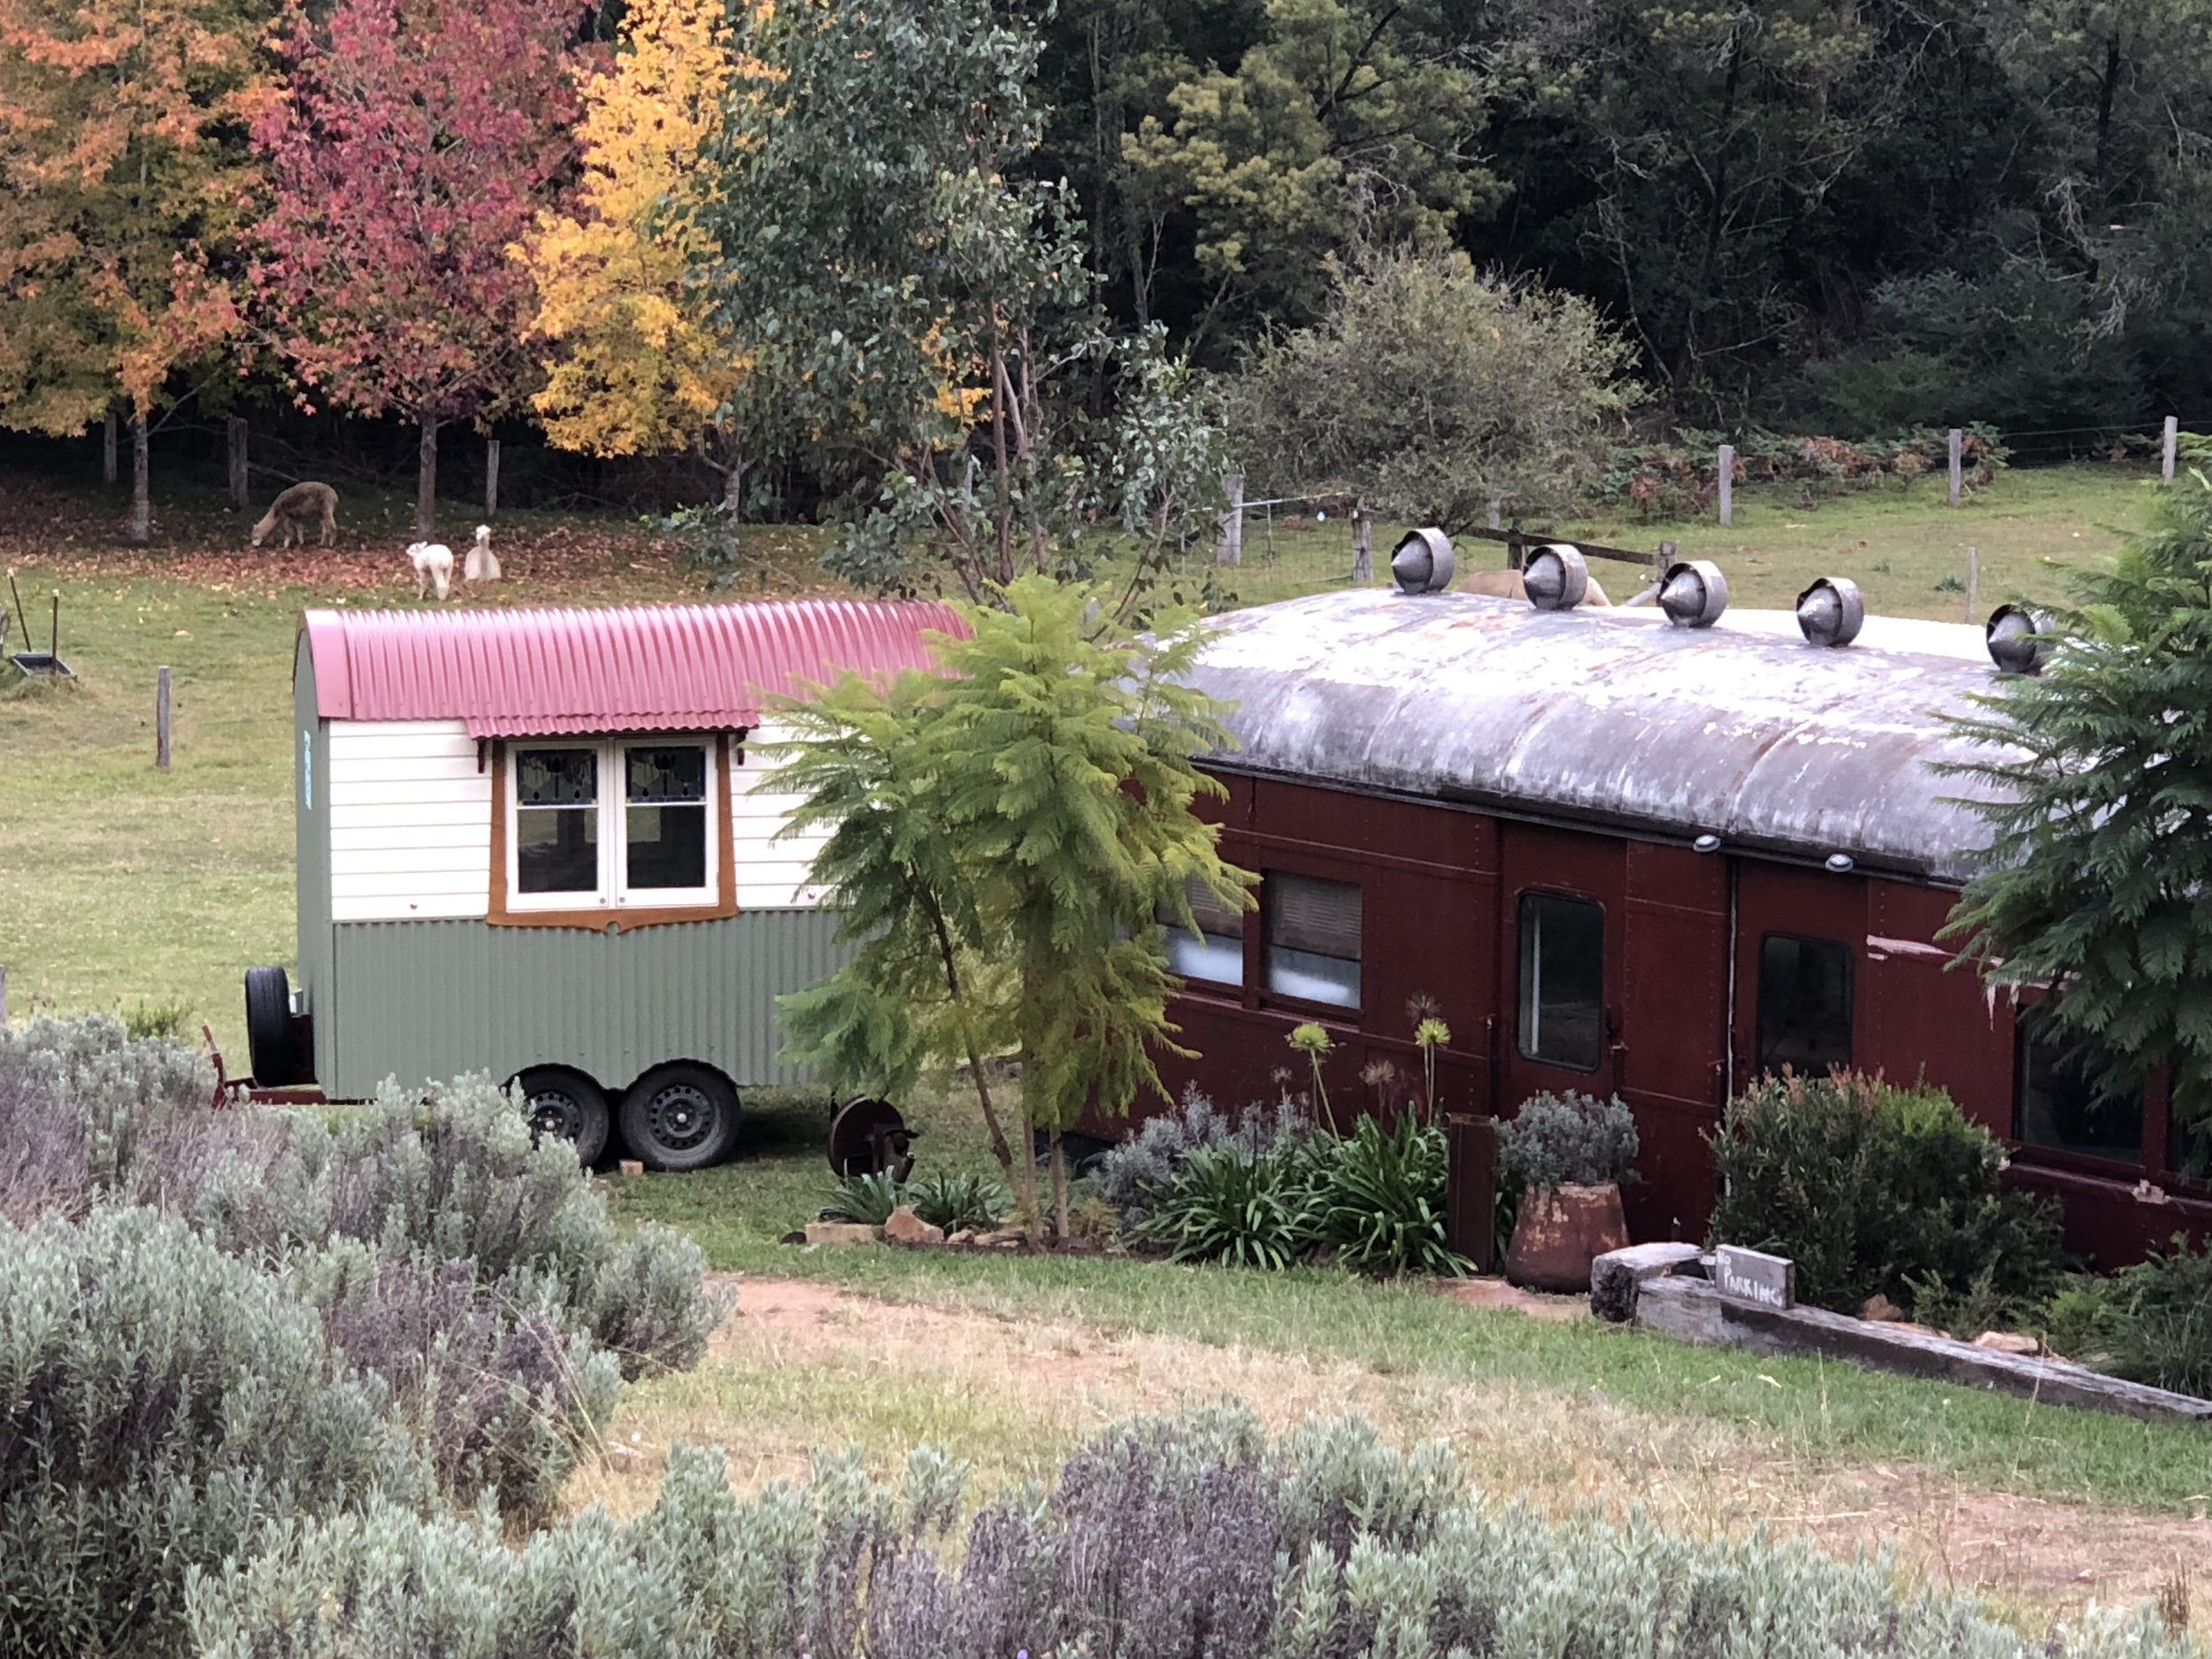 Hut & Train - Perfect pair when a group of upto 4 people book at Little Valley Farm.